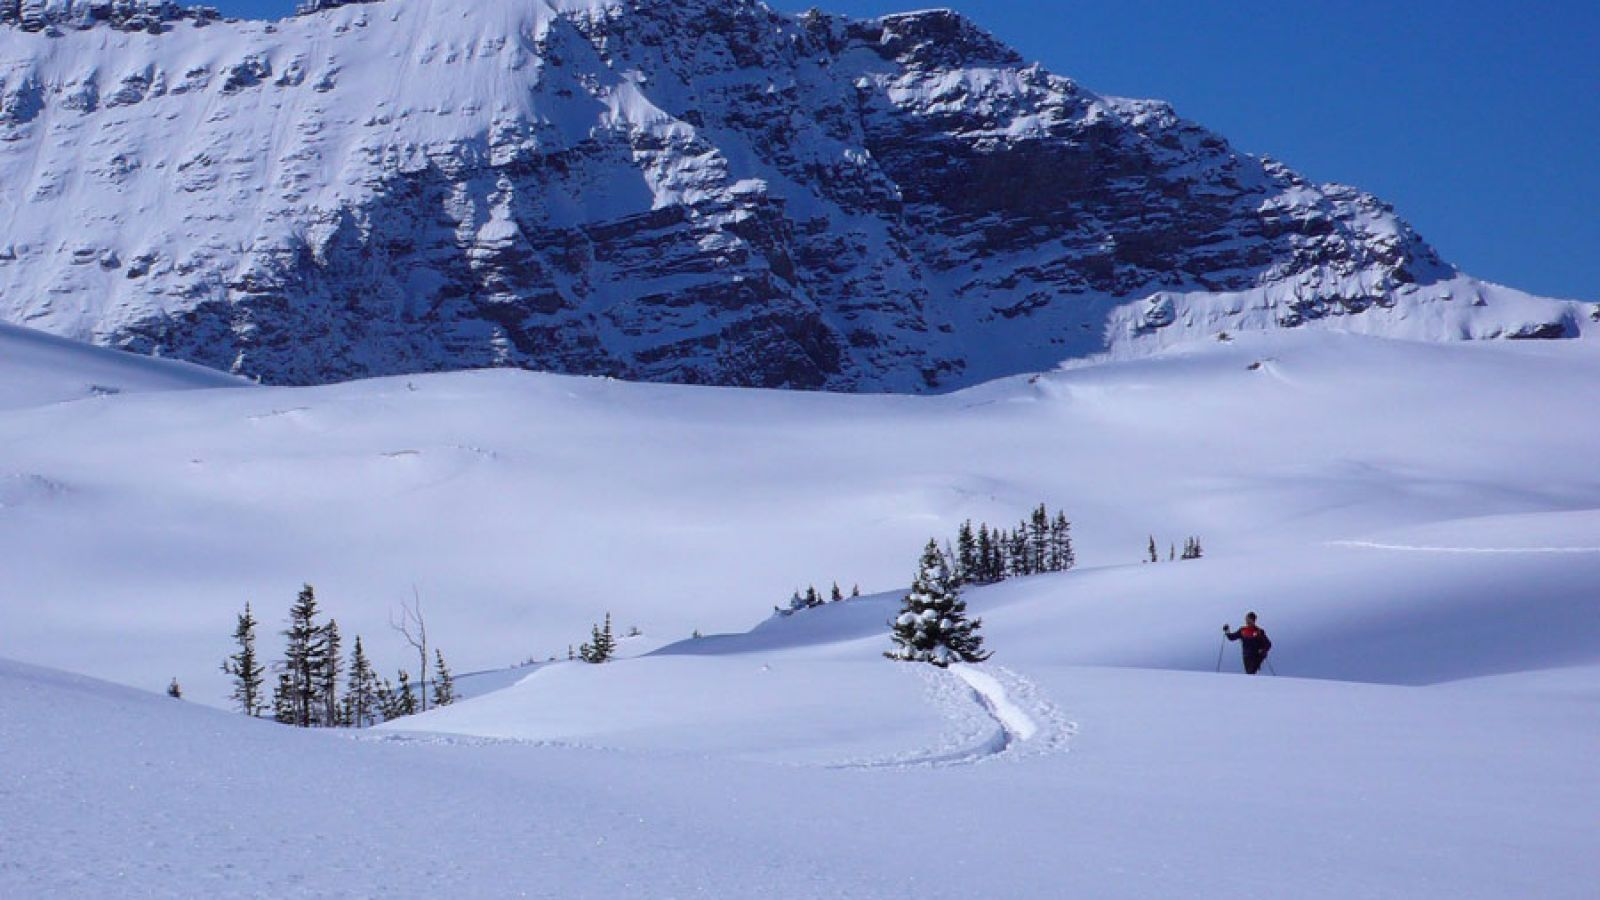 Winter activities include snowshoeing, xc and backcountry skiing.